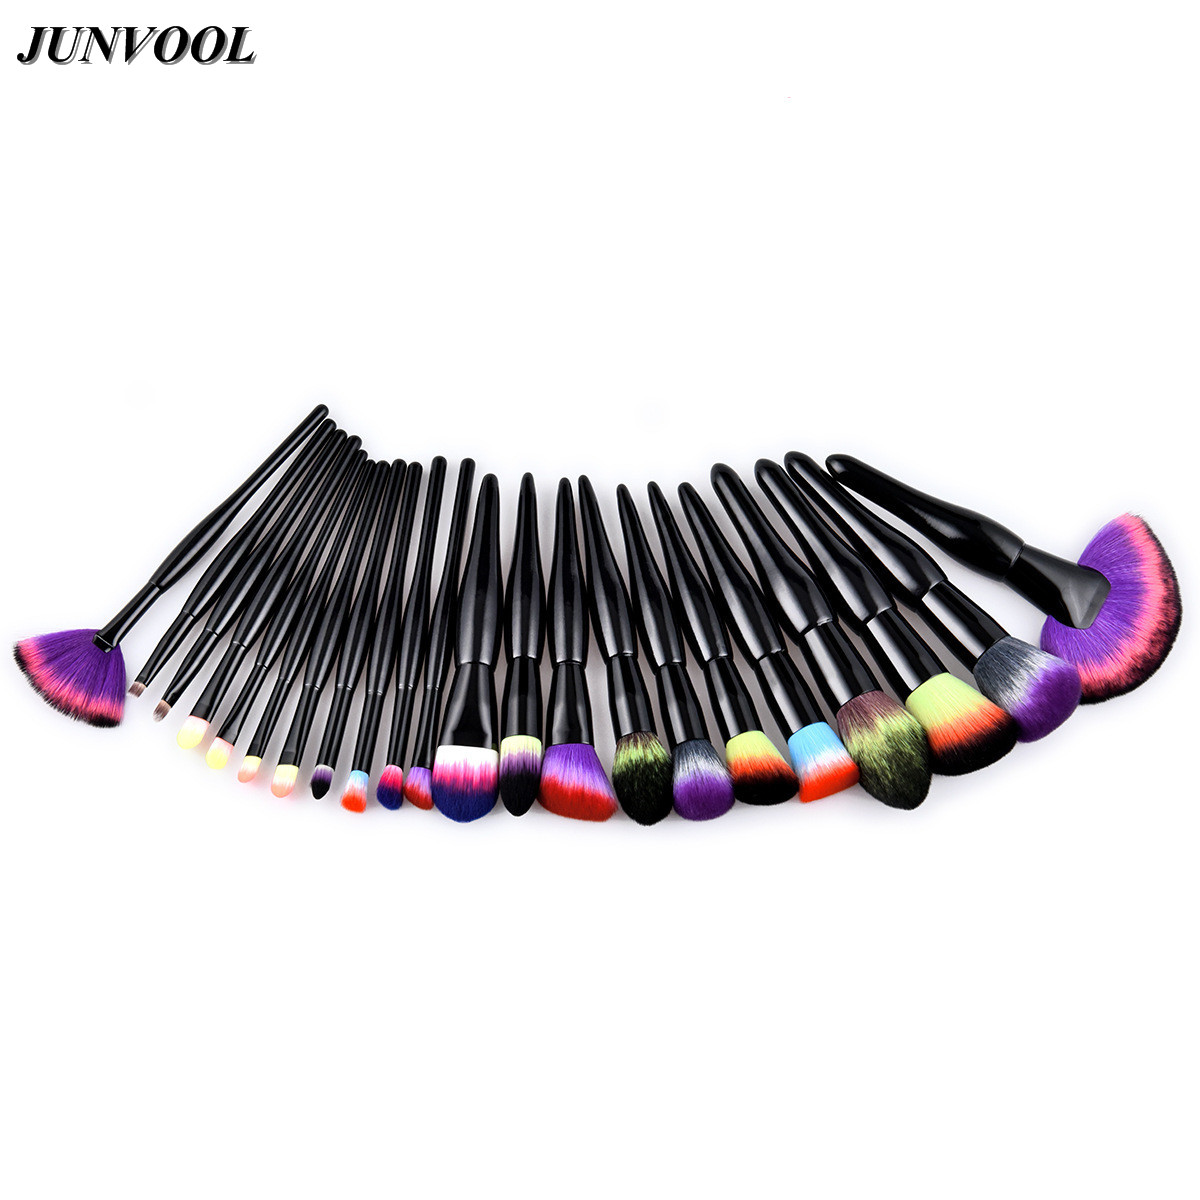 22pcs Black Makeup Brushes Set Eyeshadow Powder Foundation Make Up Fan Brush Kit Rainbow Hair Contour Face Blend Cosmetic Tools new lcbox professional 16 pcs makeup brush set kit pouch bag cosmetic brush kit cosmetic powder foundation eyeshadow brush tools